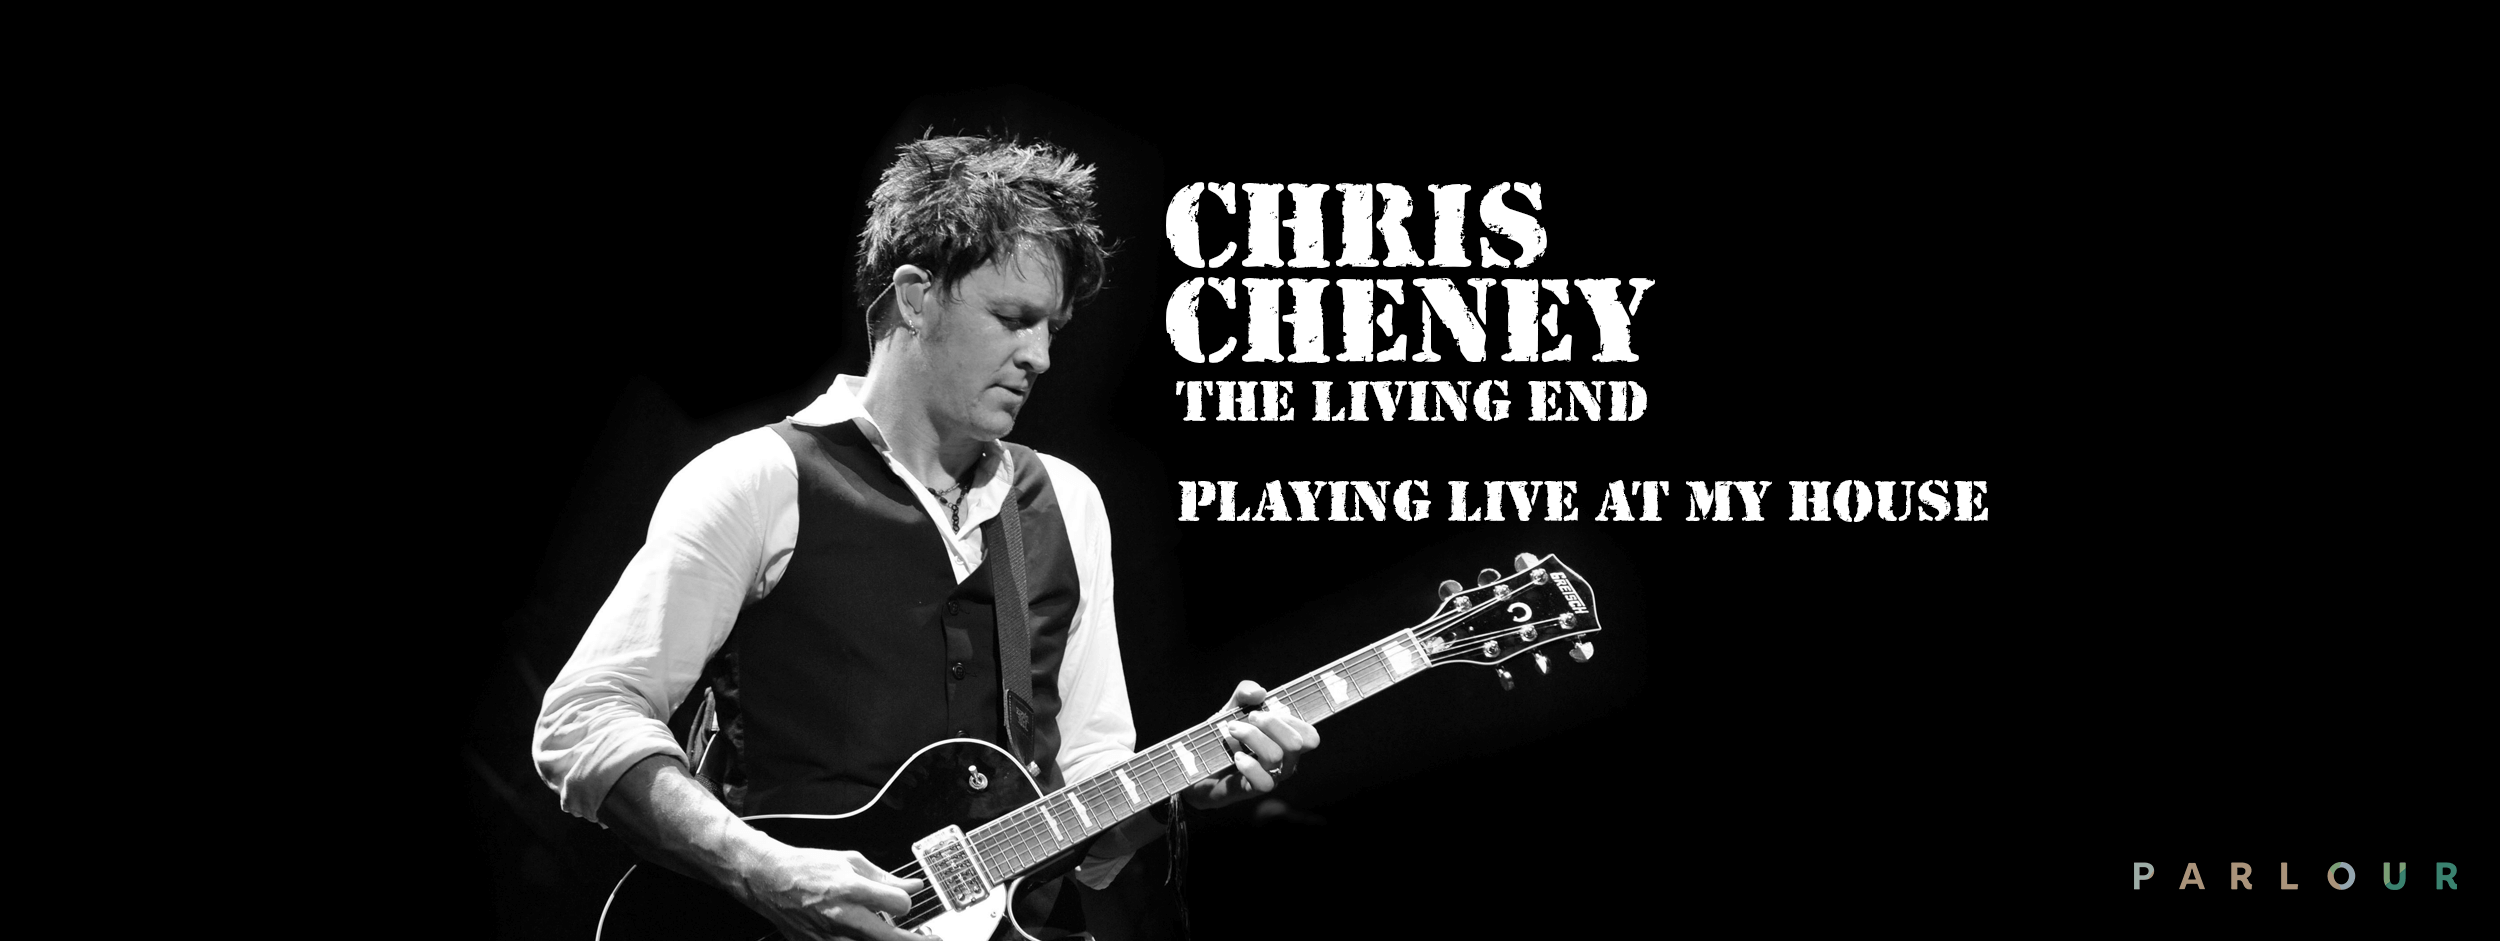 Chris Cheney Host Banner.png